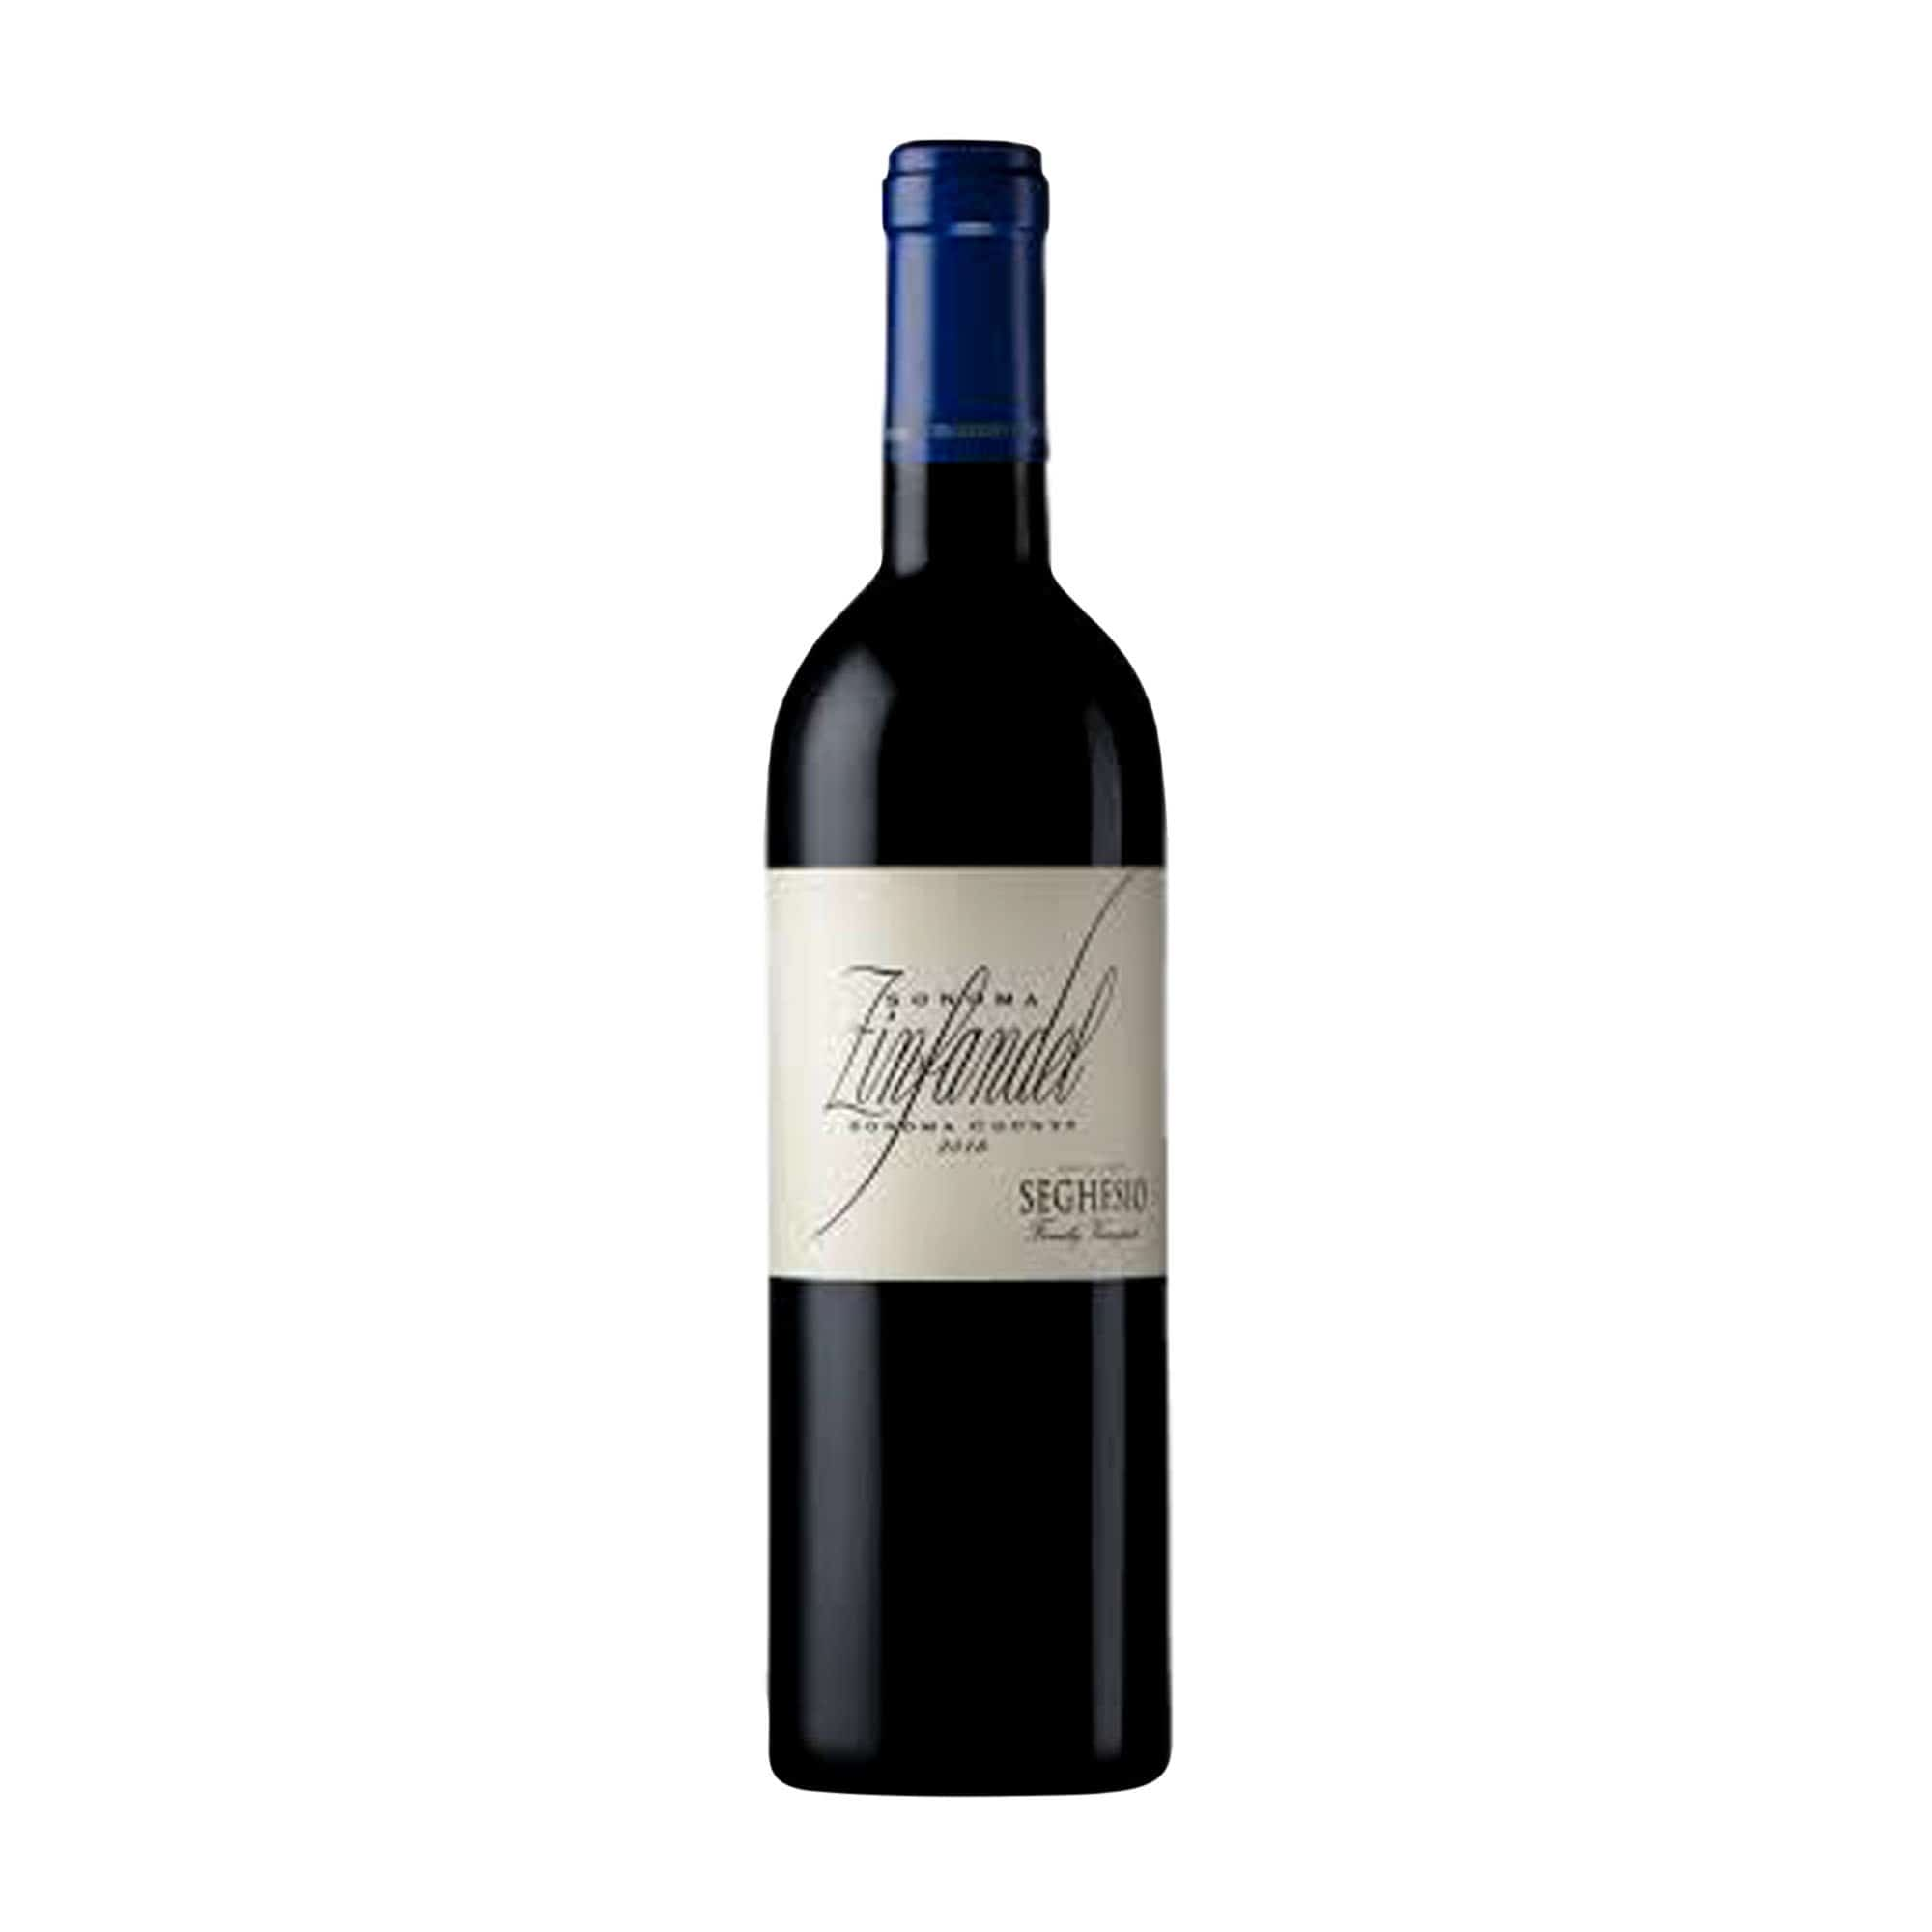 Red Wine Sonoma County Zinfandel Seghesio 2018